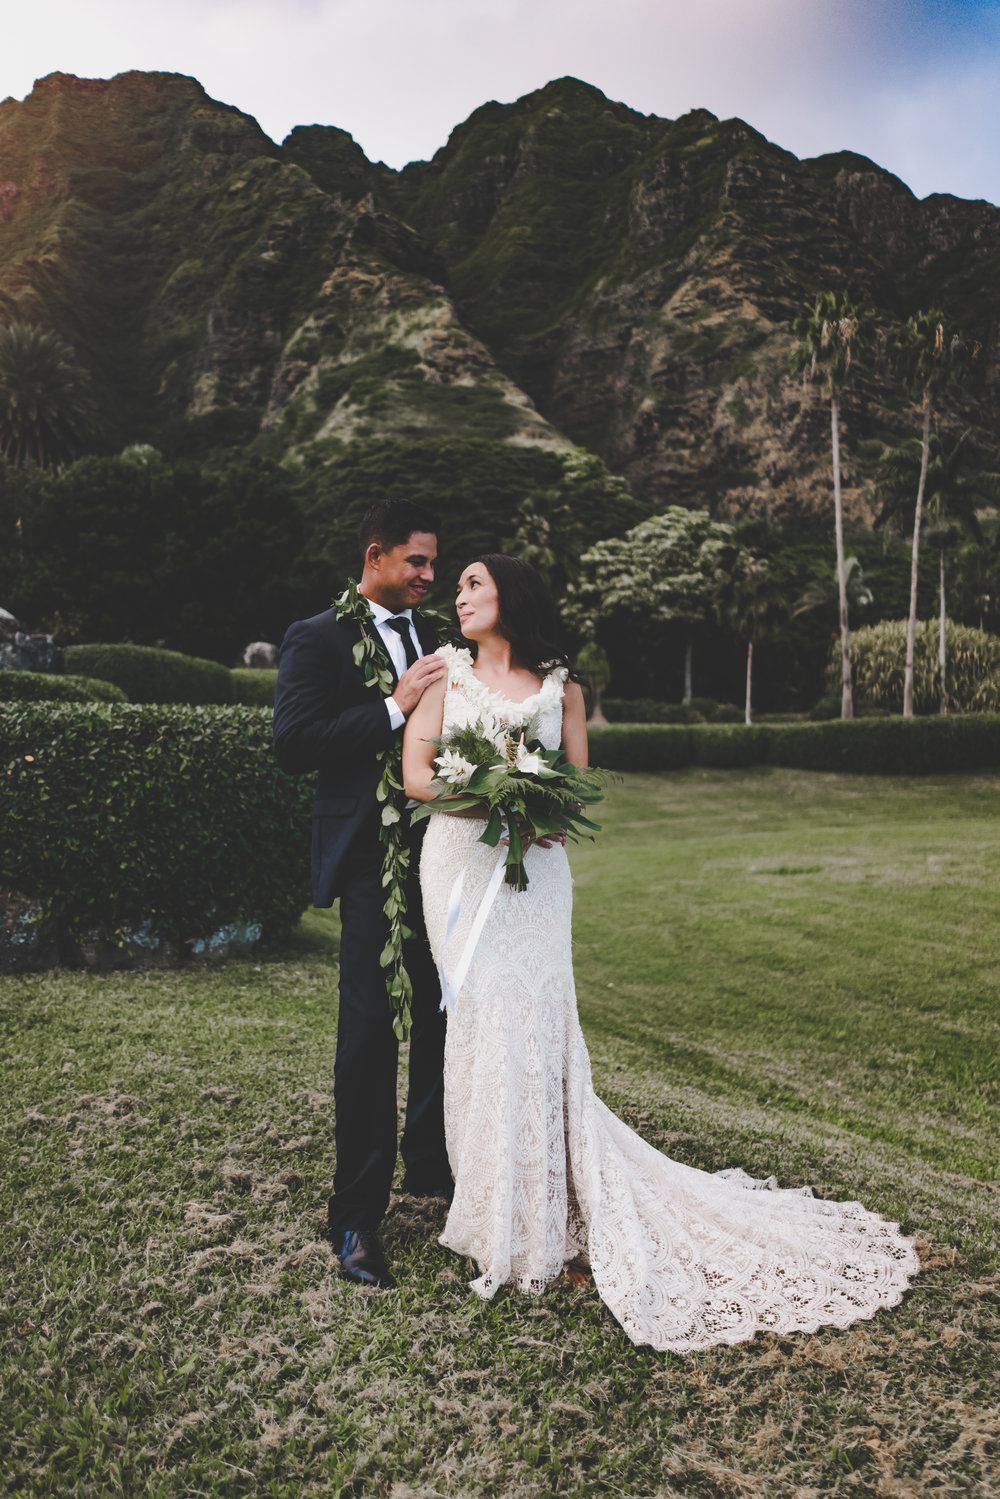 Hawaii wedding photography at Kualoa Ranch